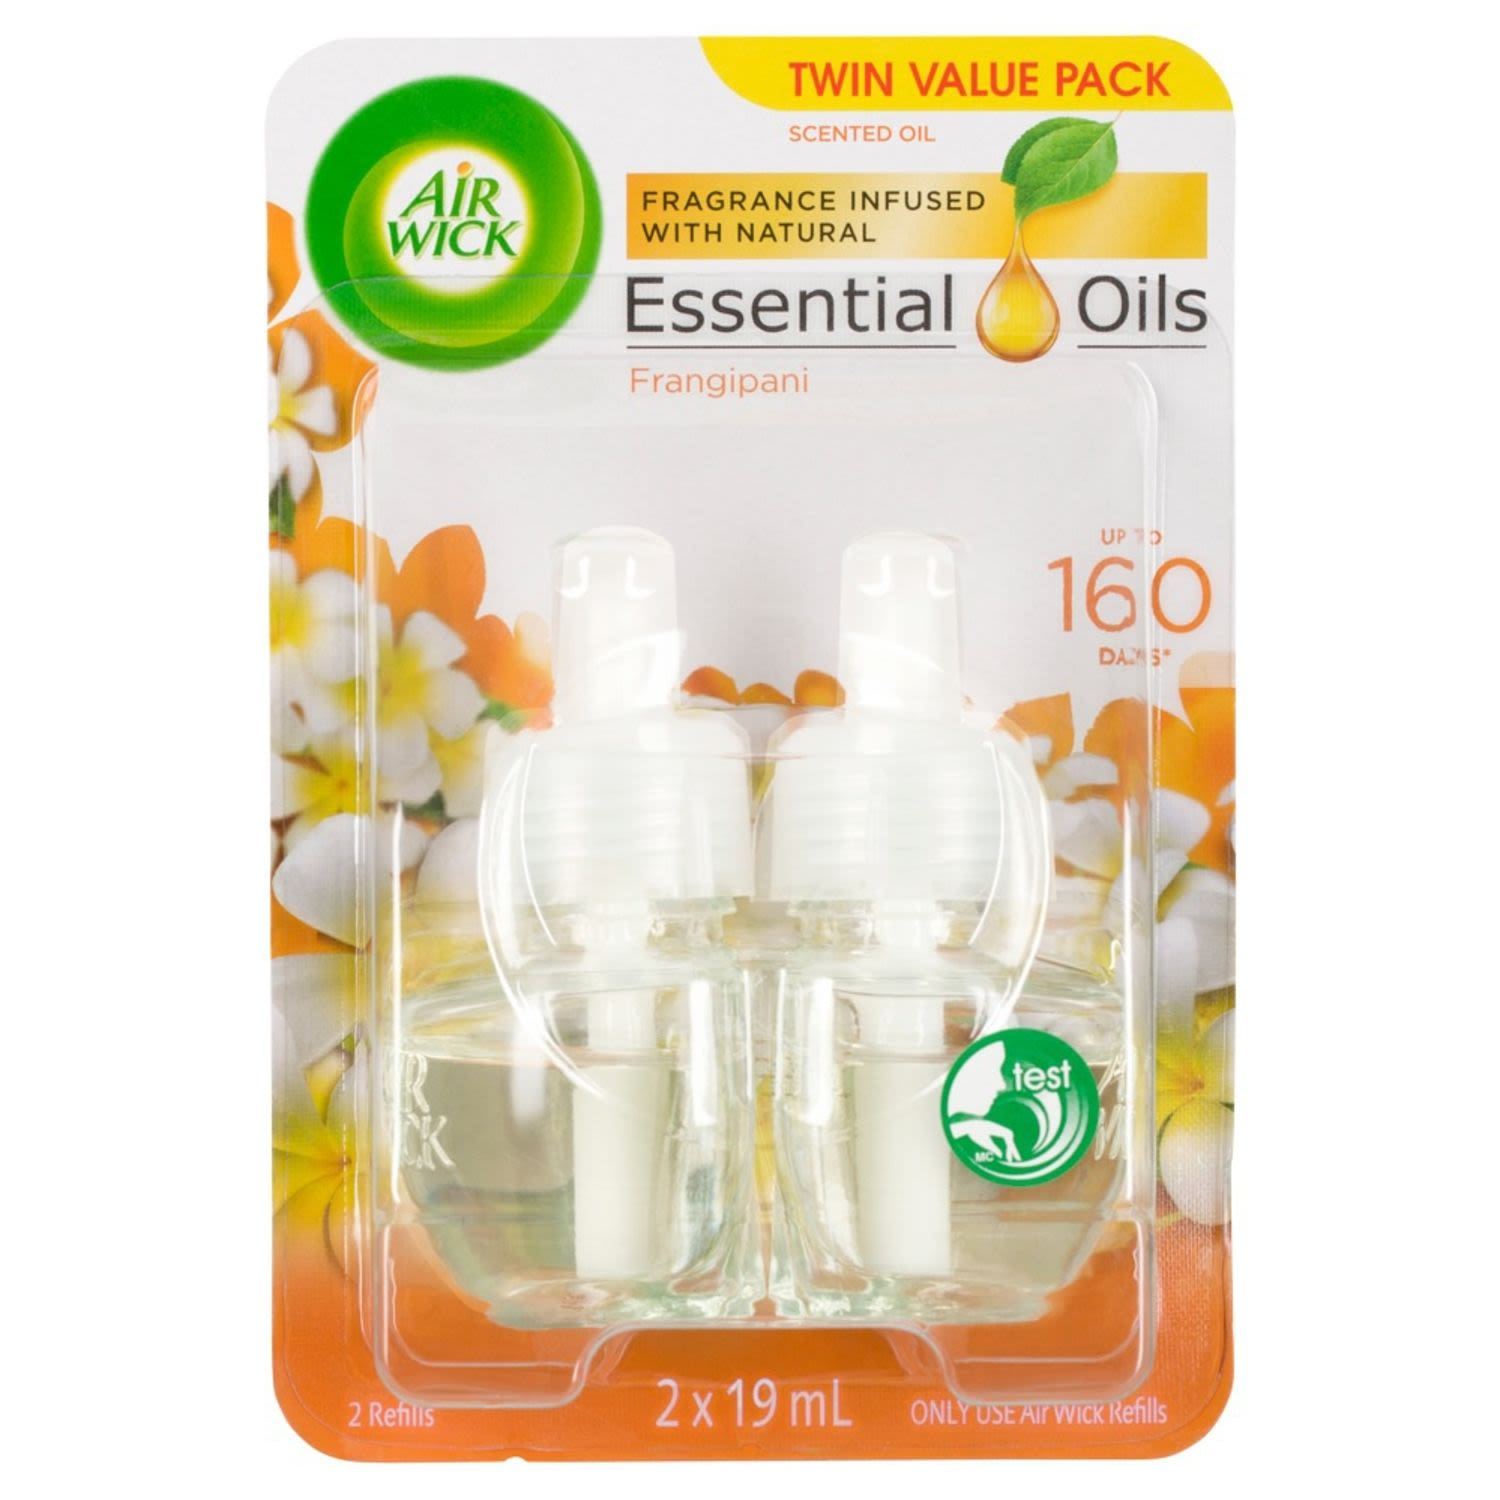 Air Wick Fragrance Infused With Natural Essential Oils Frangipani, 2 Each